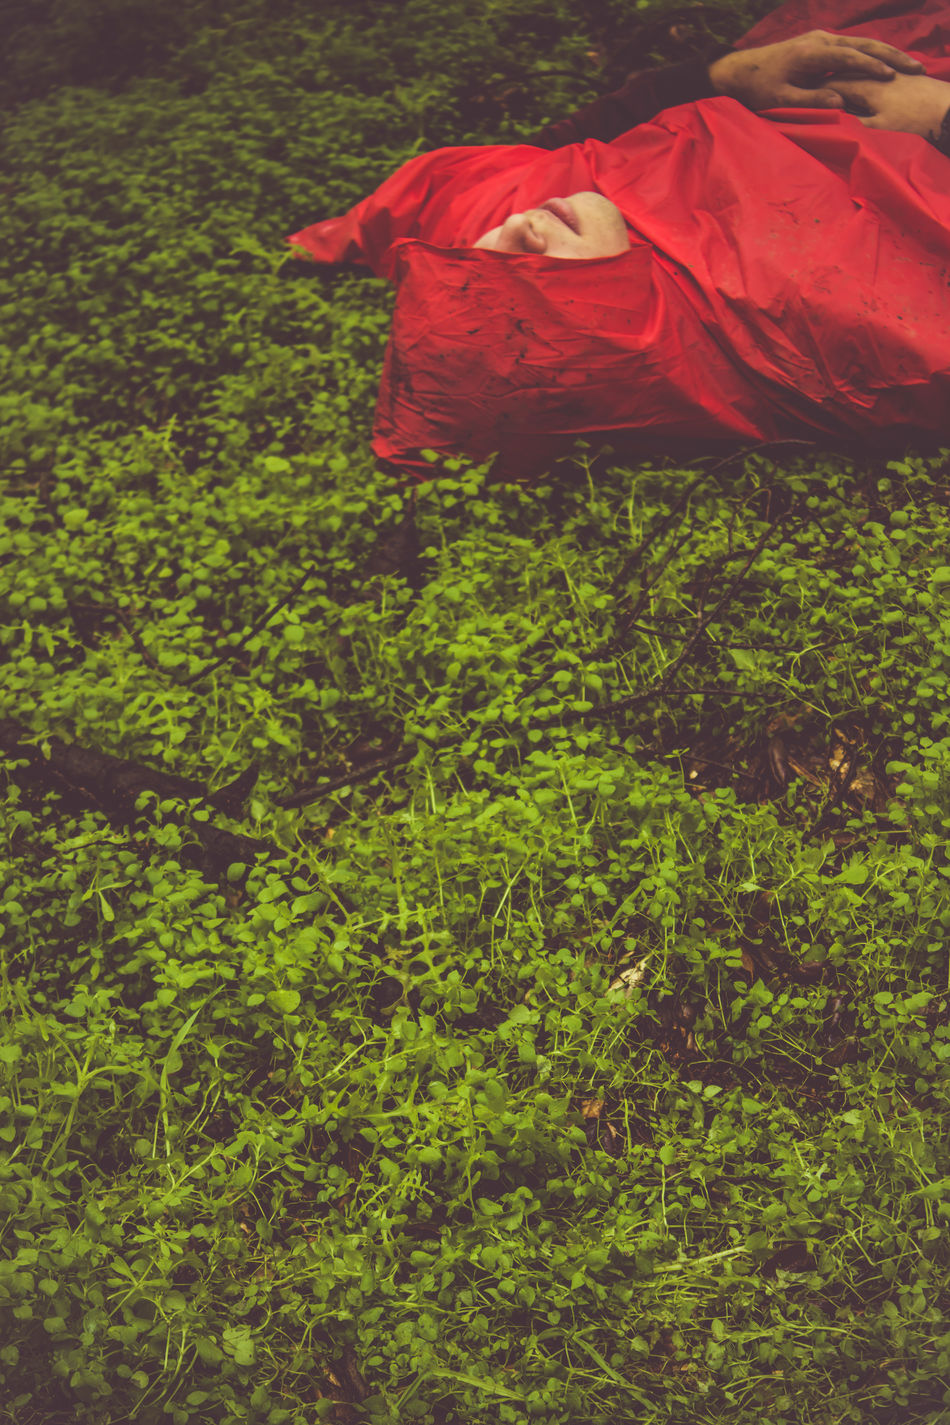 She stole the hood from me Truestory Green Color Nature Portrait No Faces Beauty In Nature Day Outdoors Grass Red Complimentary Colors Art Is Everywhere